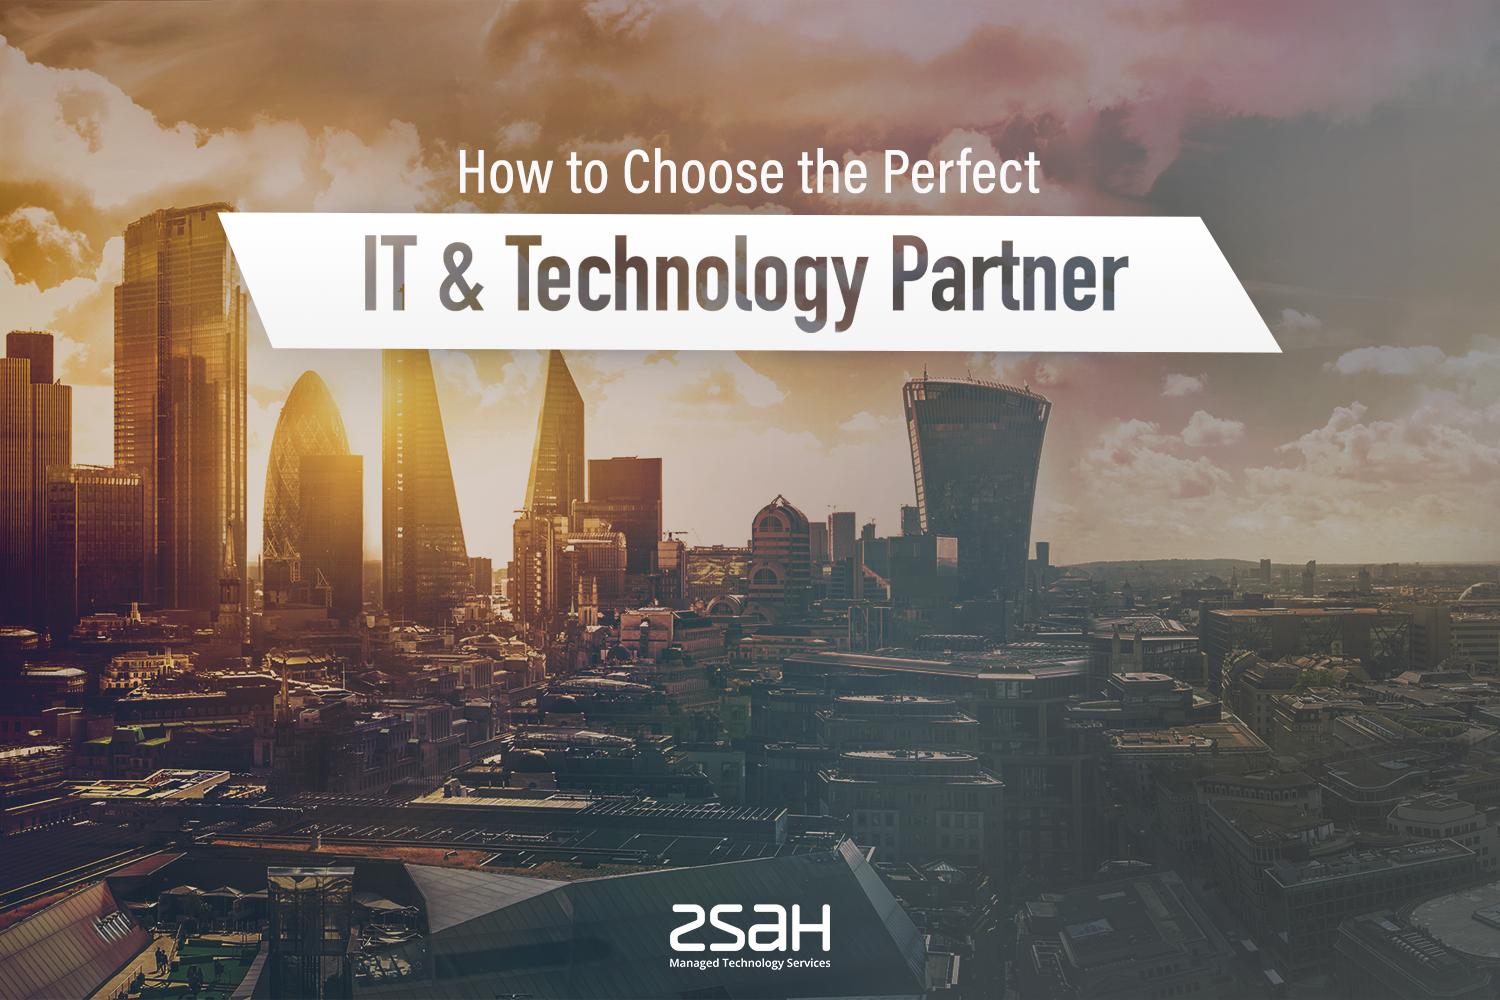 How to Choose the perfect IT and technology partner - zsah